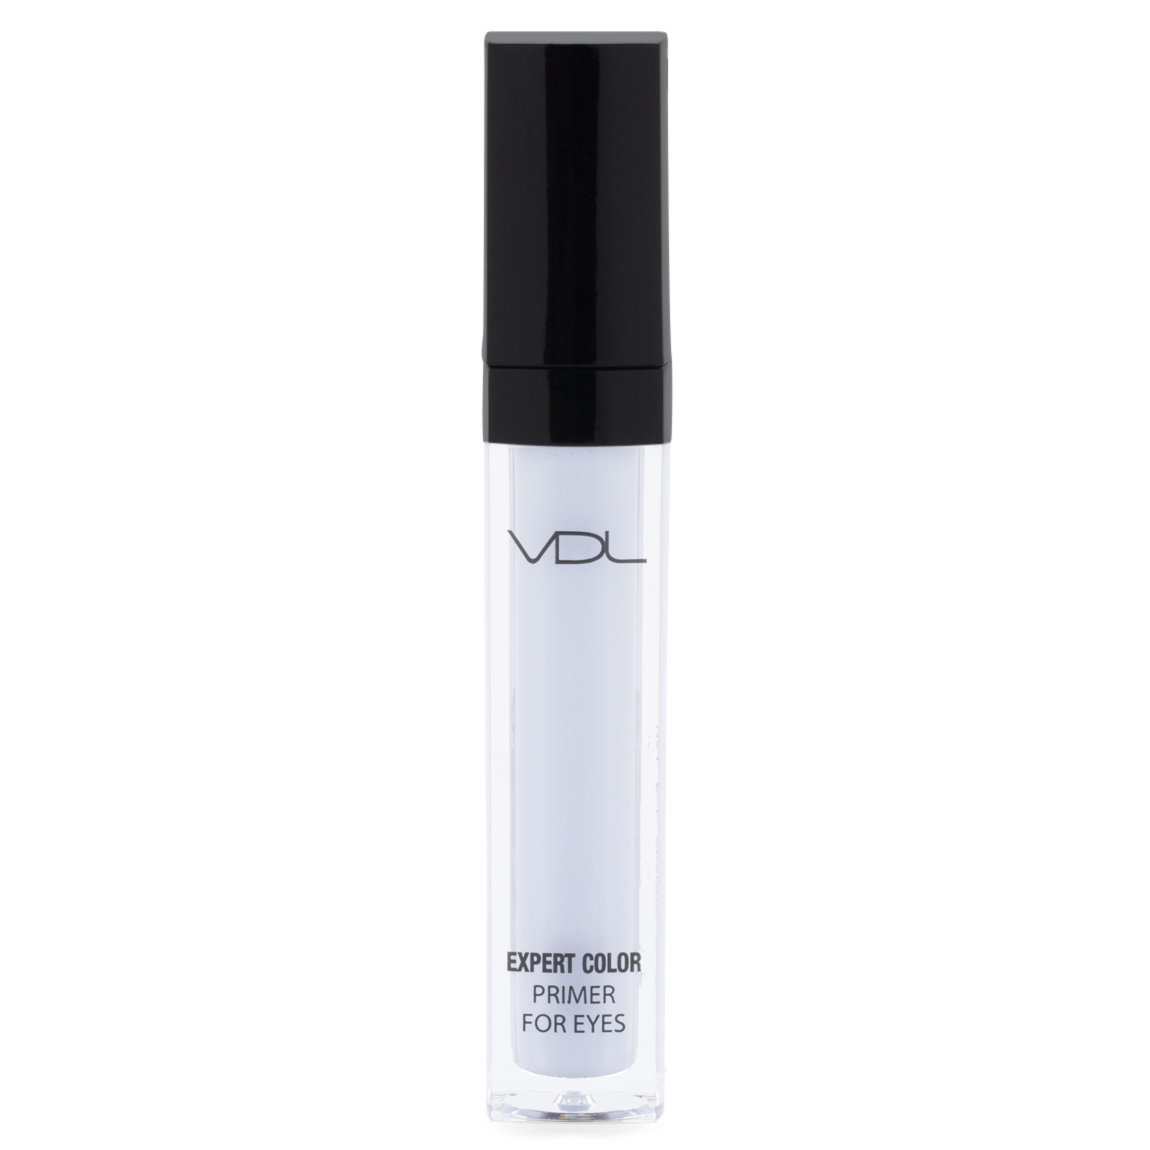 VDL Expert Color Primer For Eyes Serenity